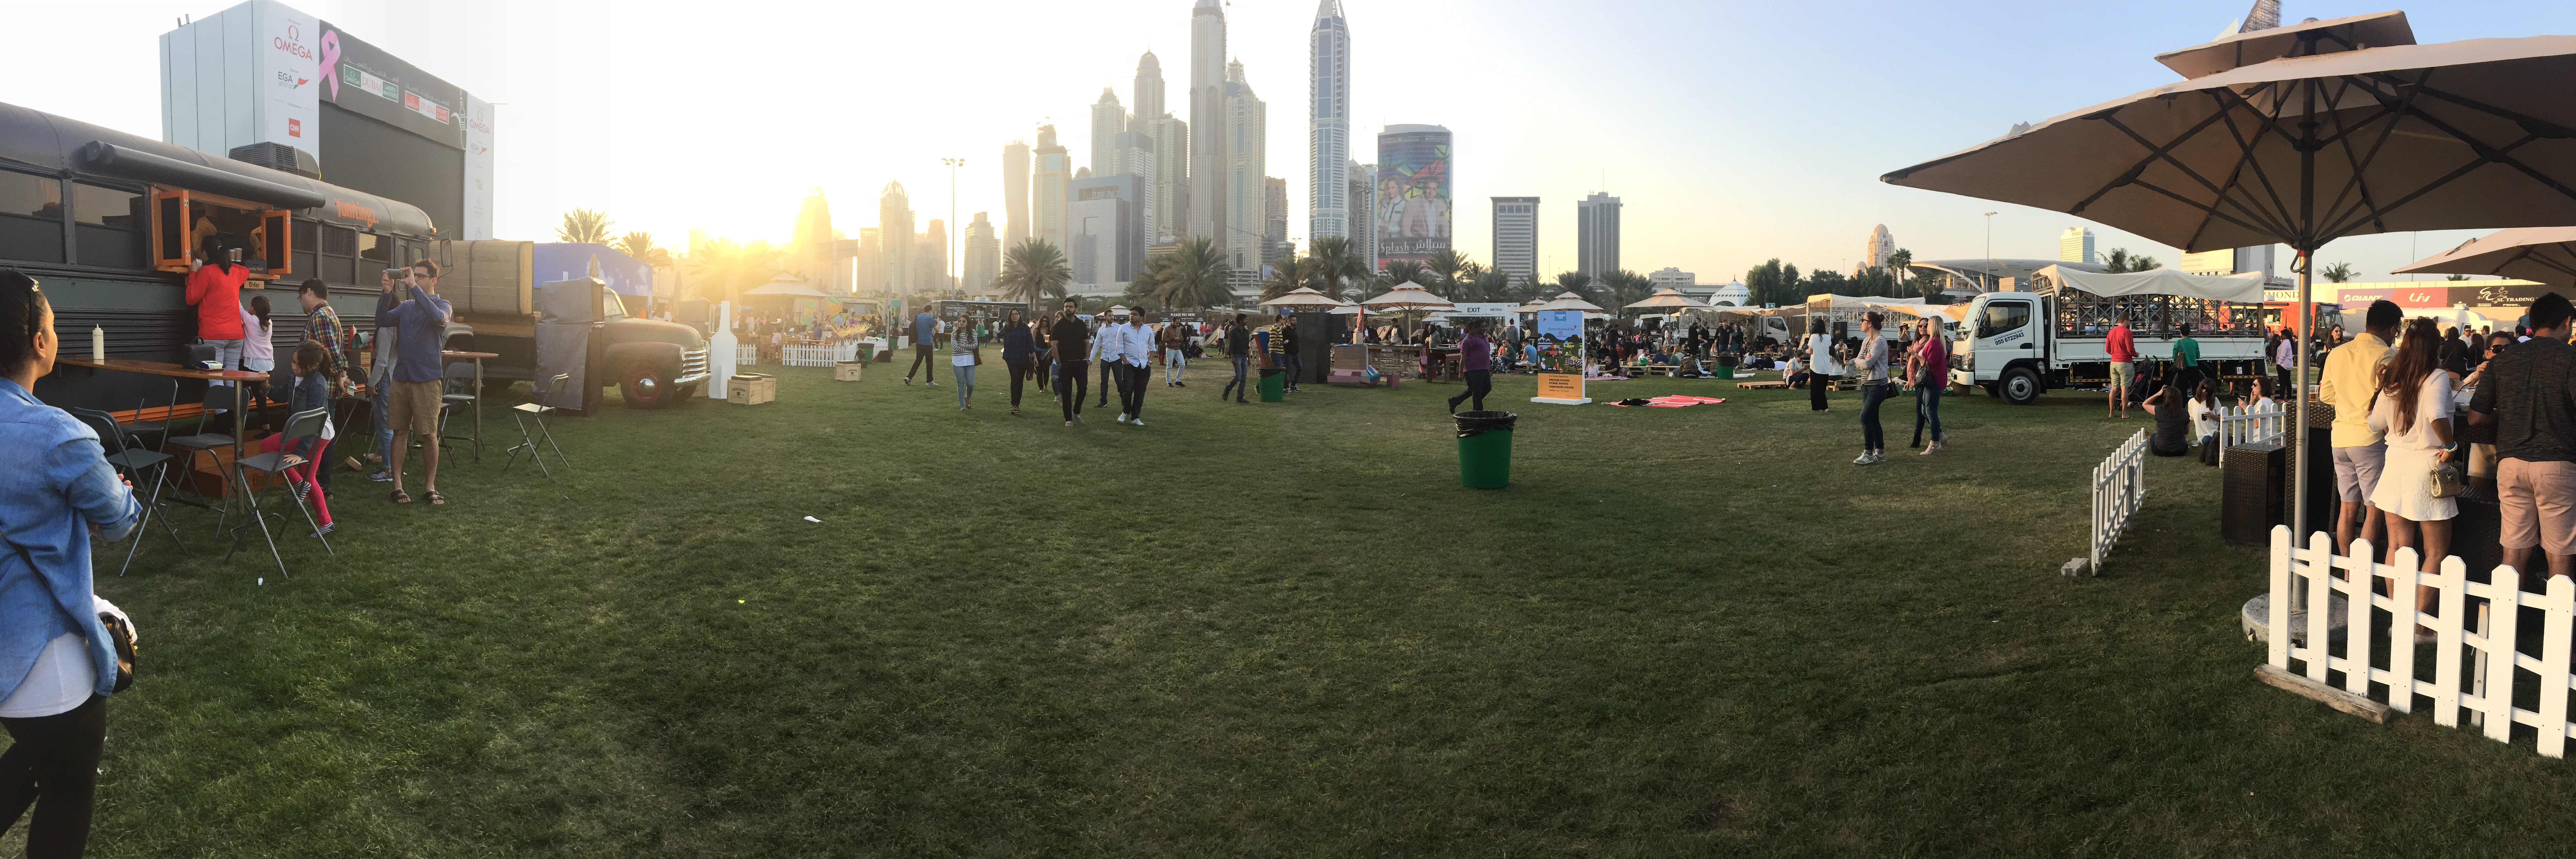 This weekend the TruckersDxb held the first Food Truck Jam at Emirates Golf Club the whole